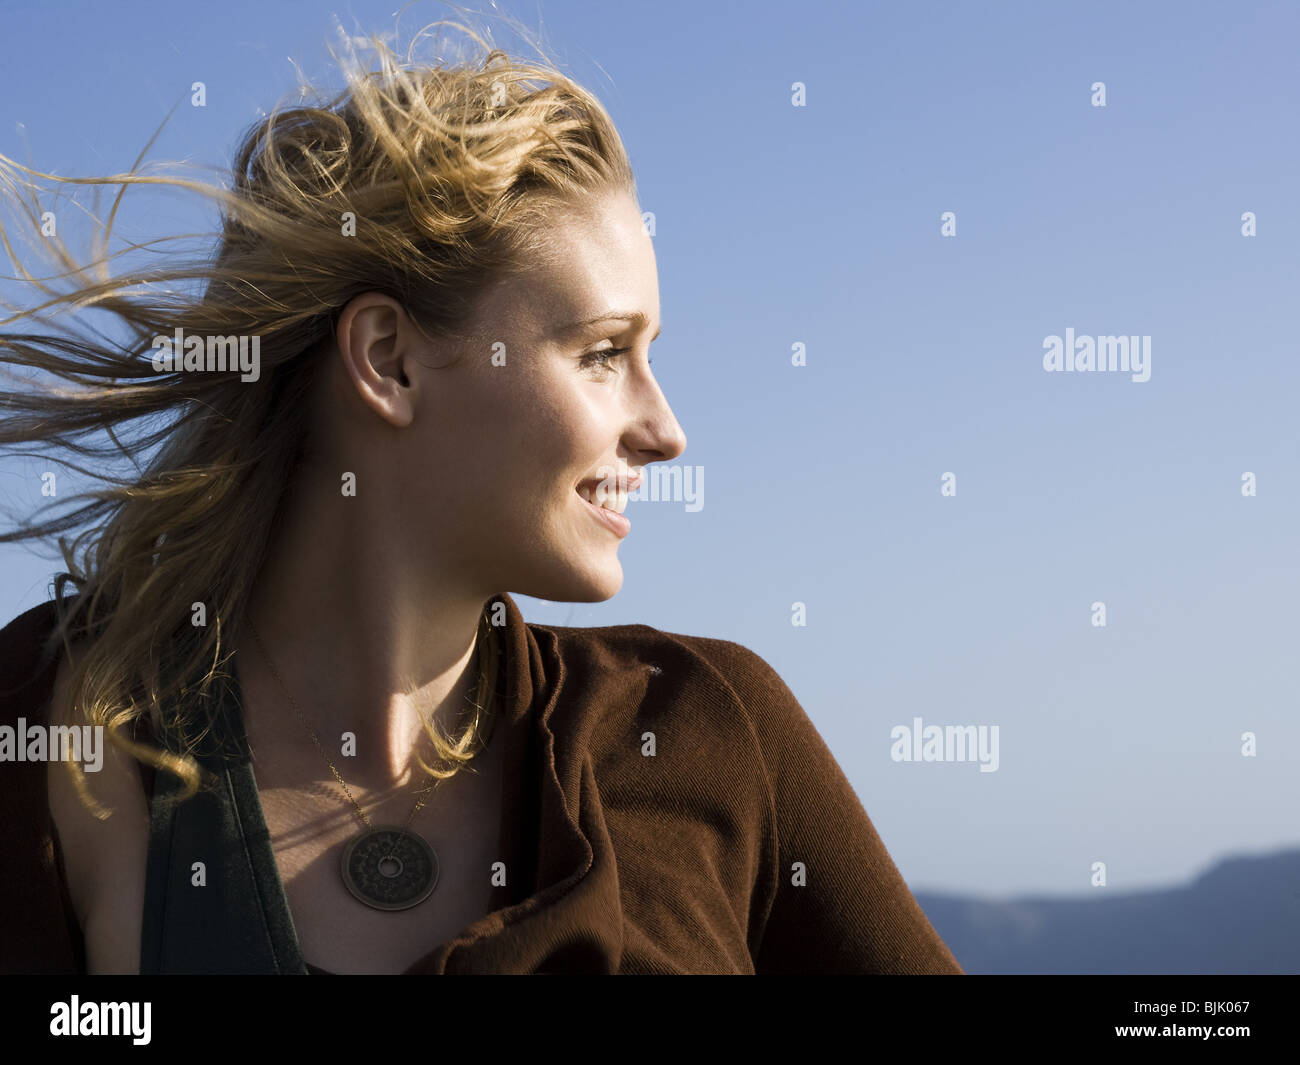 Closeup of woman smiling outdoors with blue sky - Stock Image